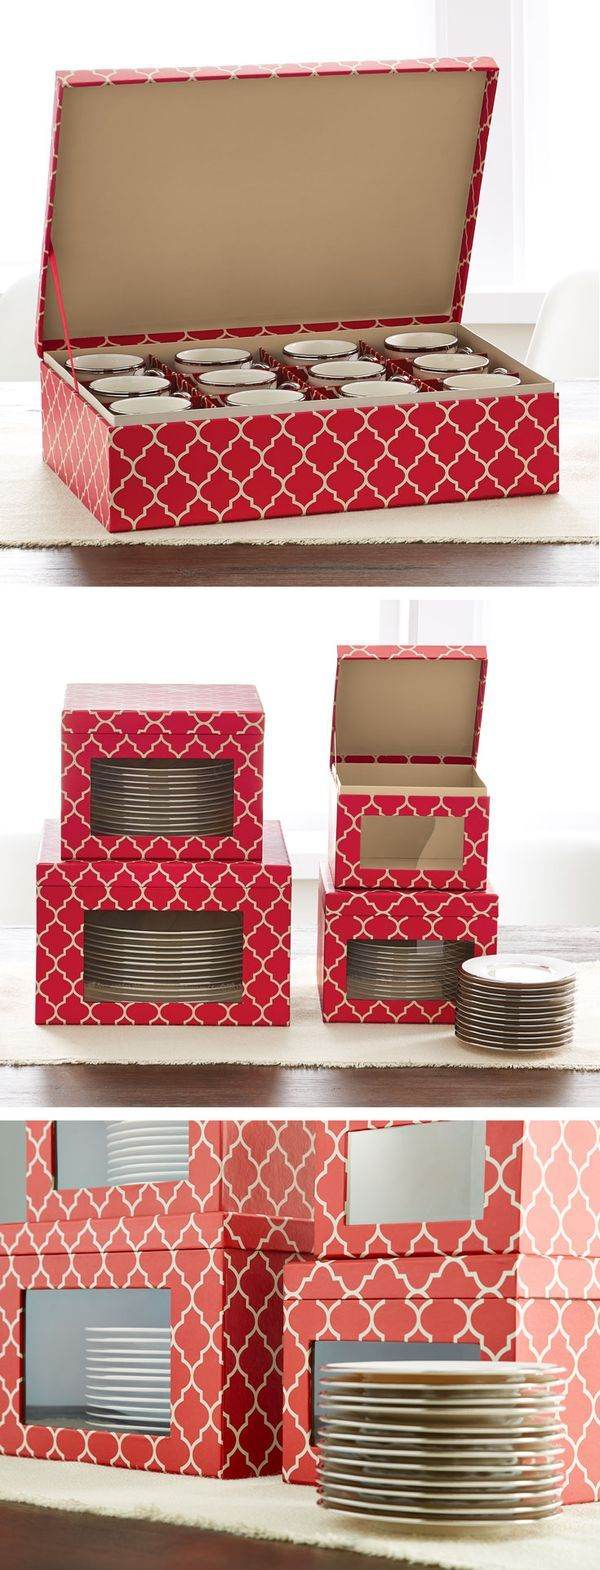 best ideas about holiday dinnerware on pinterest christmas